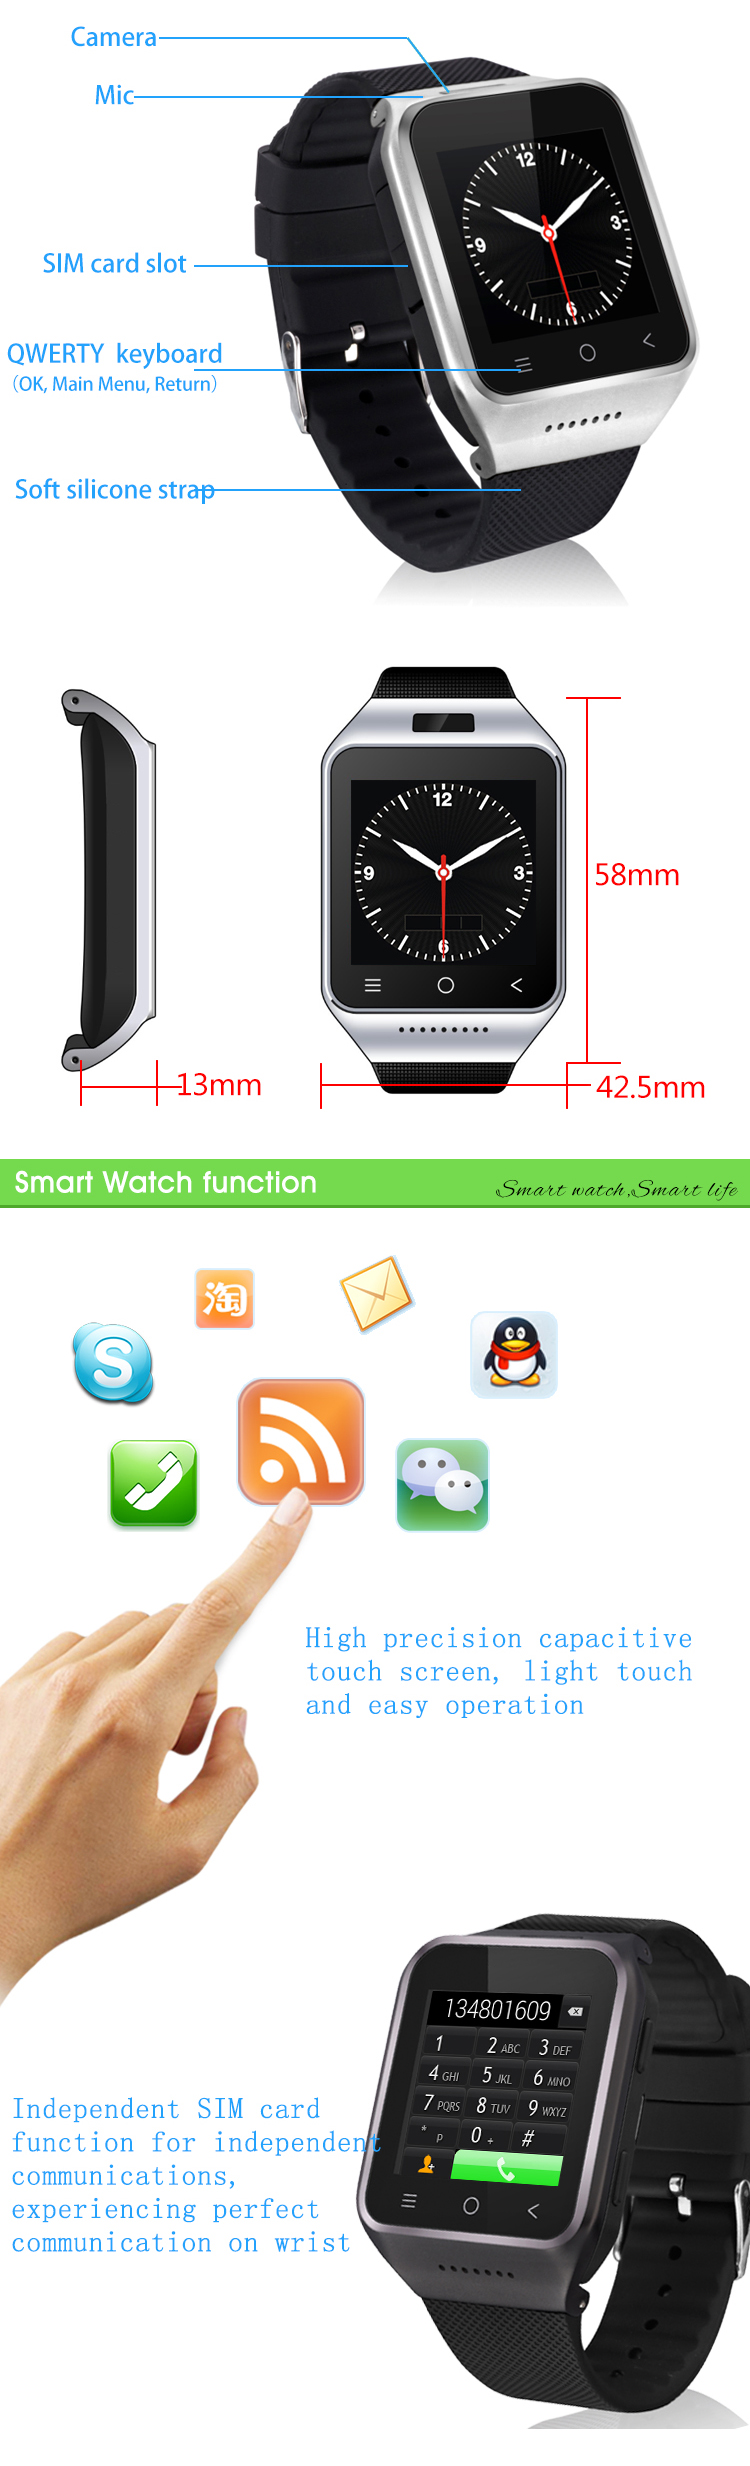 New Android Smart Watch Wrist watch MTK6572 Dual Core 4GB+8GB Rom 512MB Ram 1.54 inch 5.0MP Camera Wifi 3G GPS Smartwatch Phone